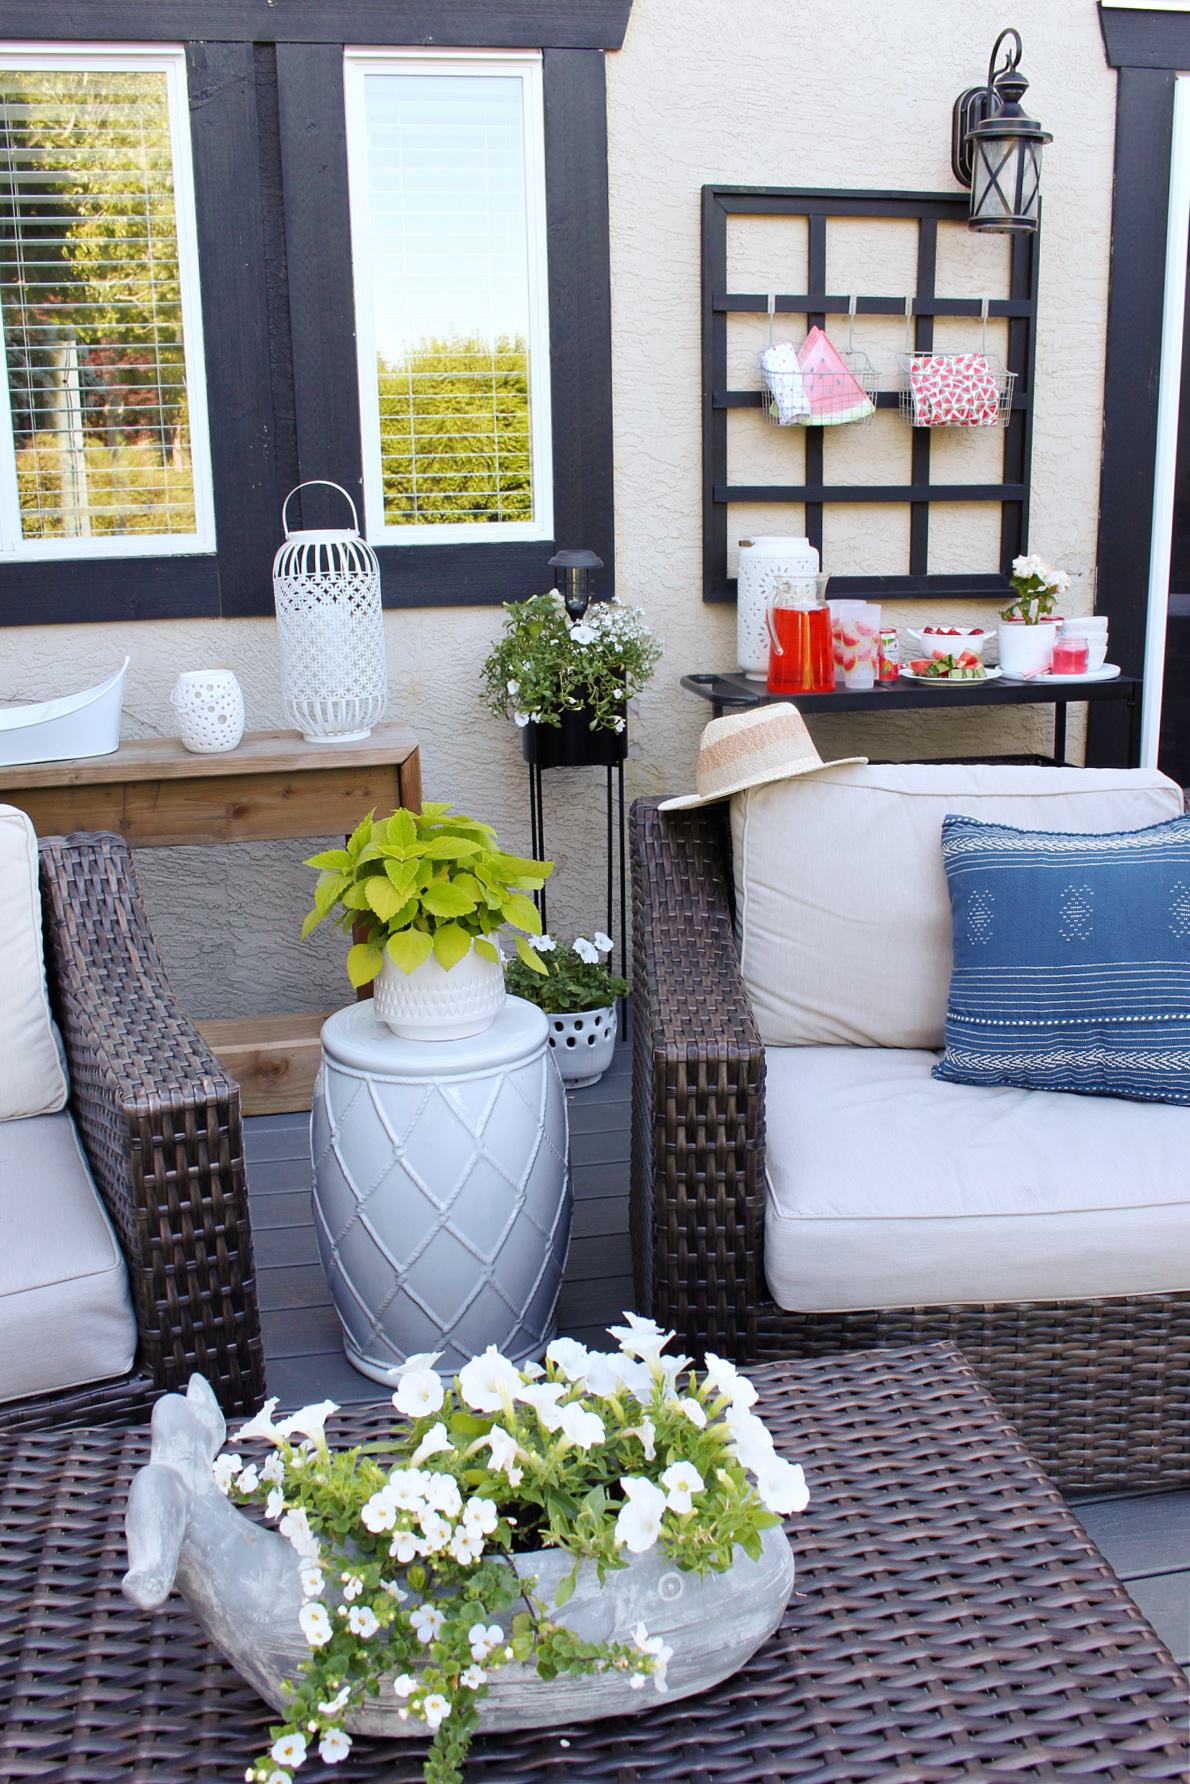 Summer patio decor with white flowers and pops of blue.